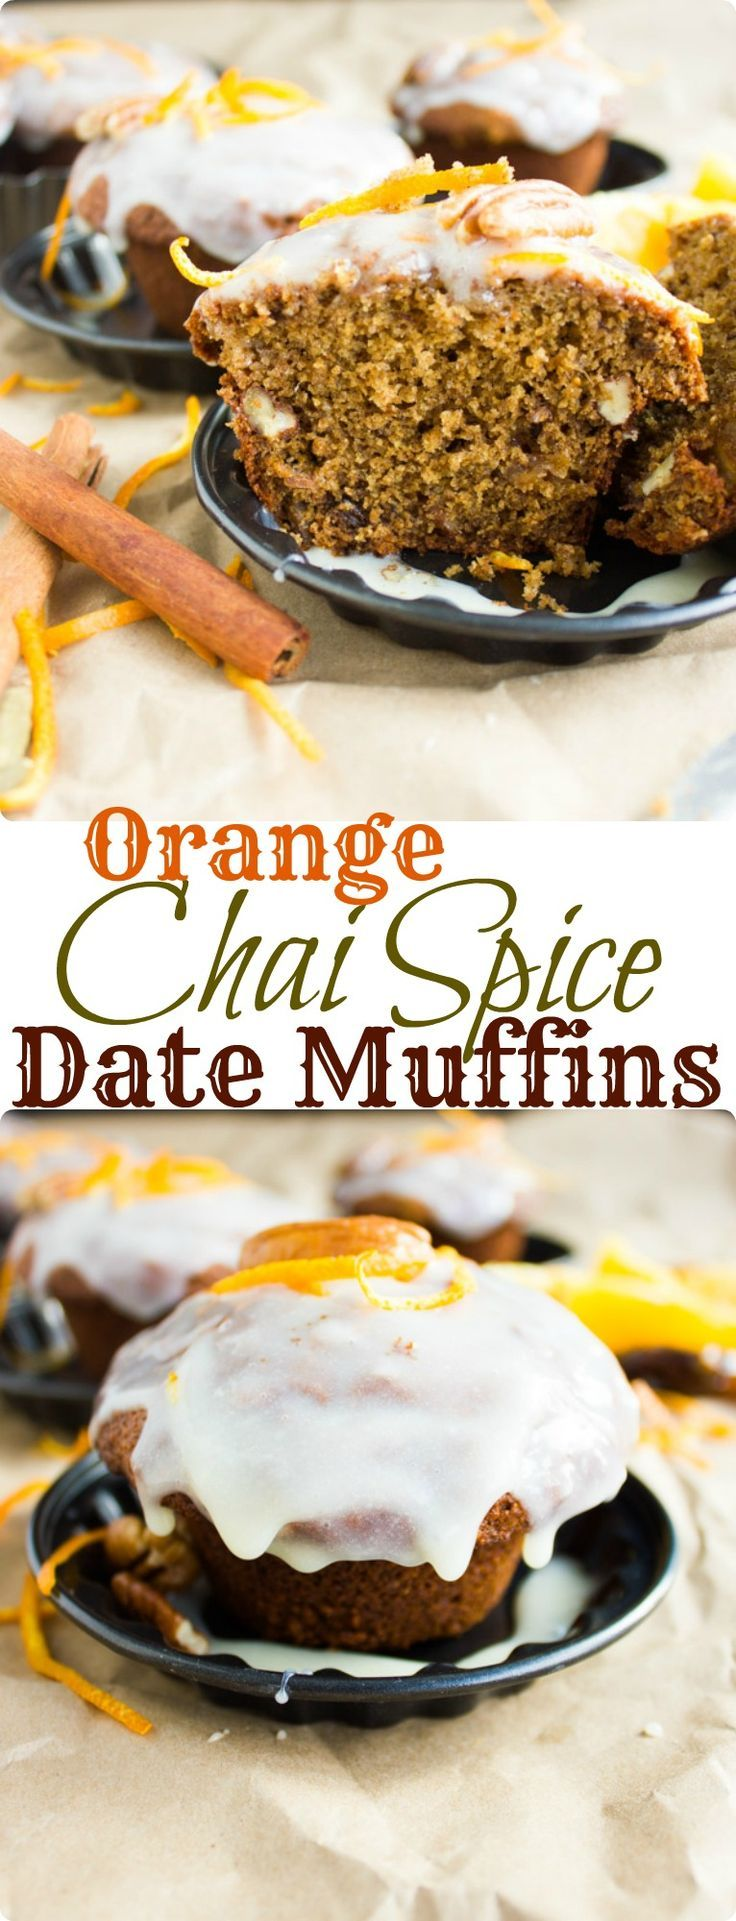 Orange Chai Spice Date Muffins. Super moist muffins, sweetened with dates and oranges, spiked with fragrant Chai spice and glazed with more orange. A pure spice, sweet and comfort type Vegan muffin you will make over and over again. www.twopurplefigs.com